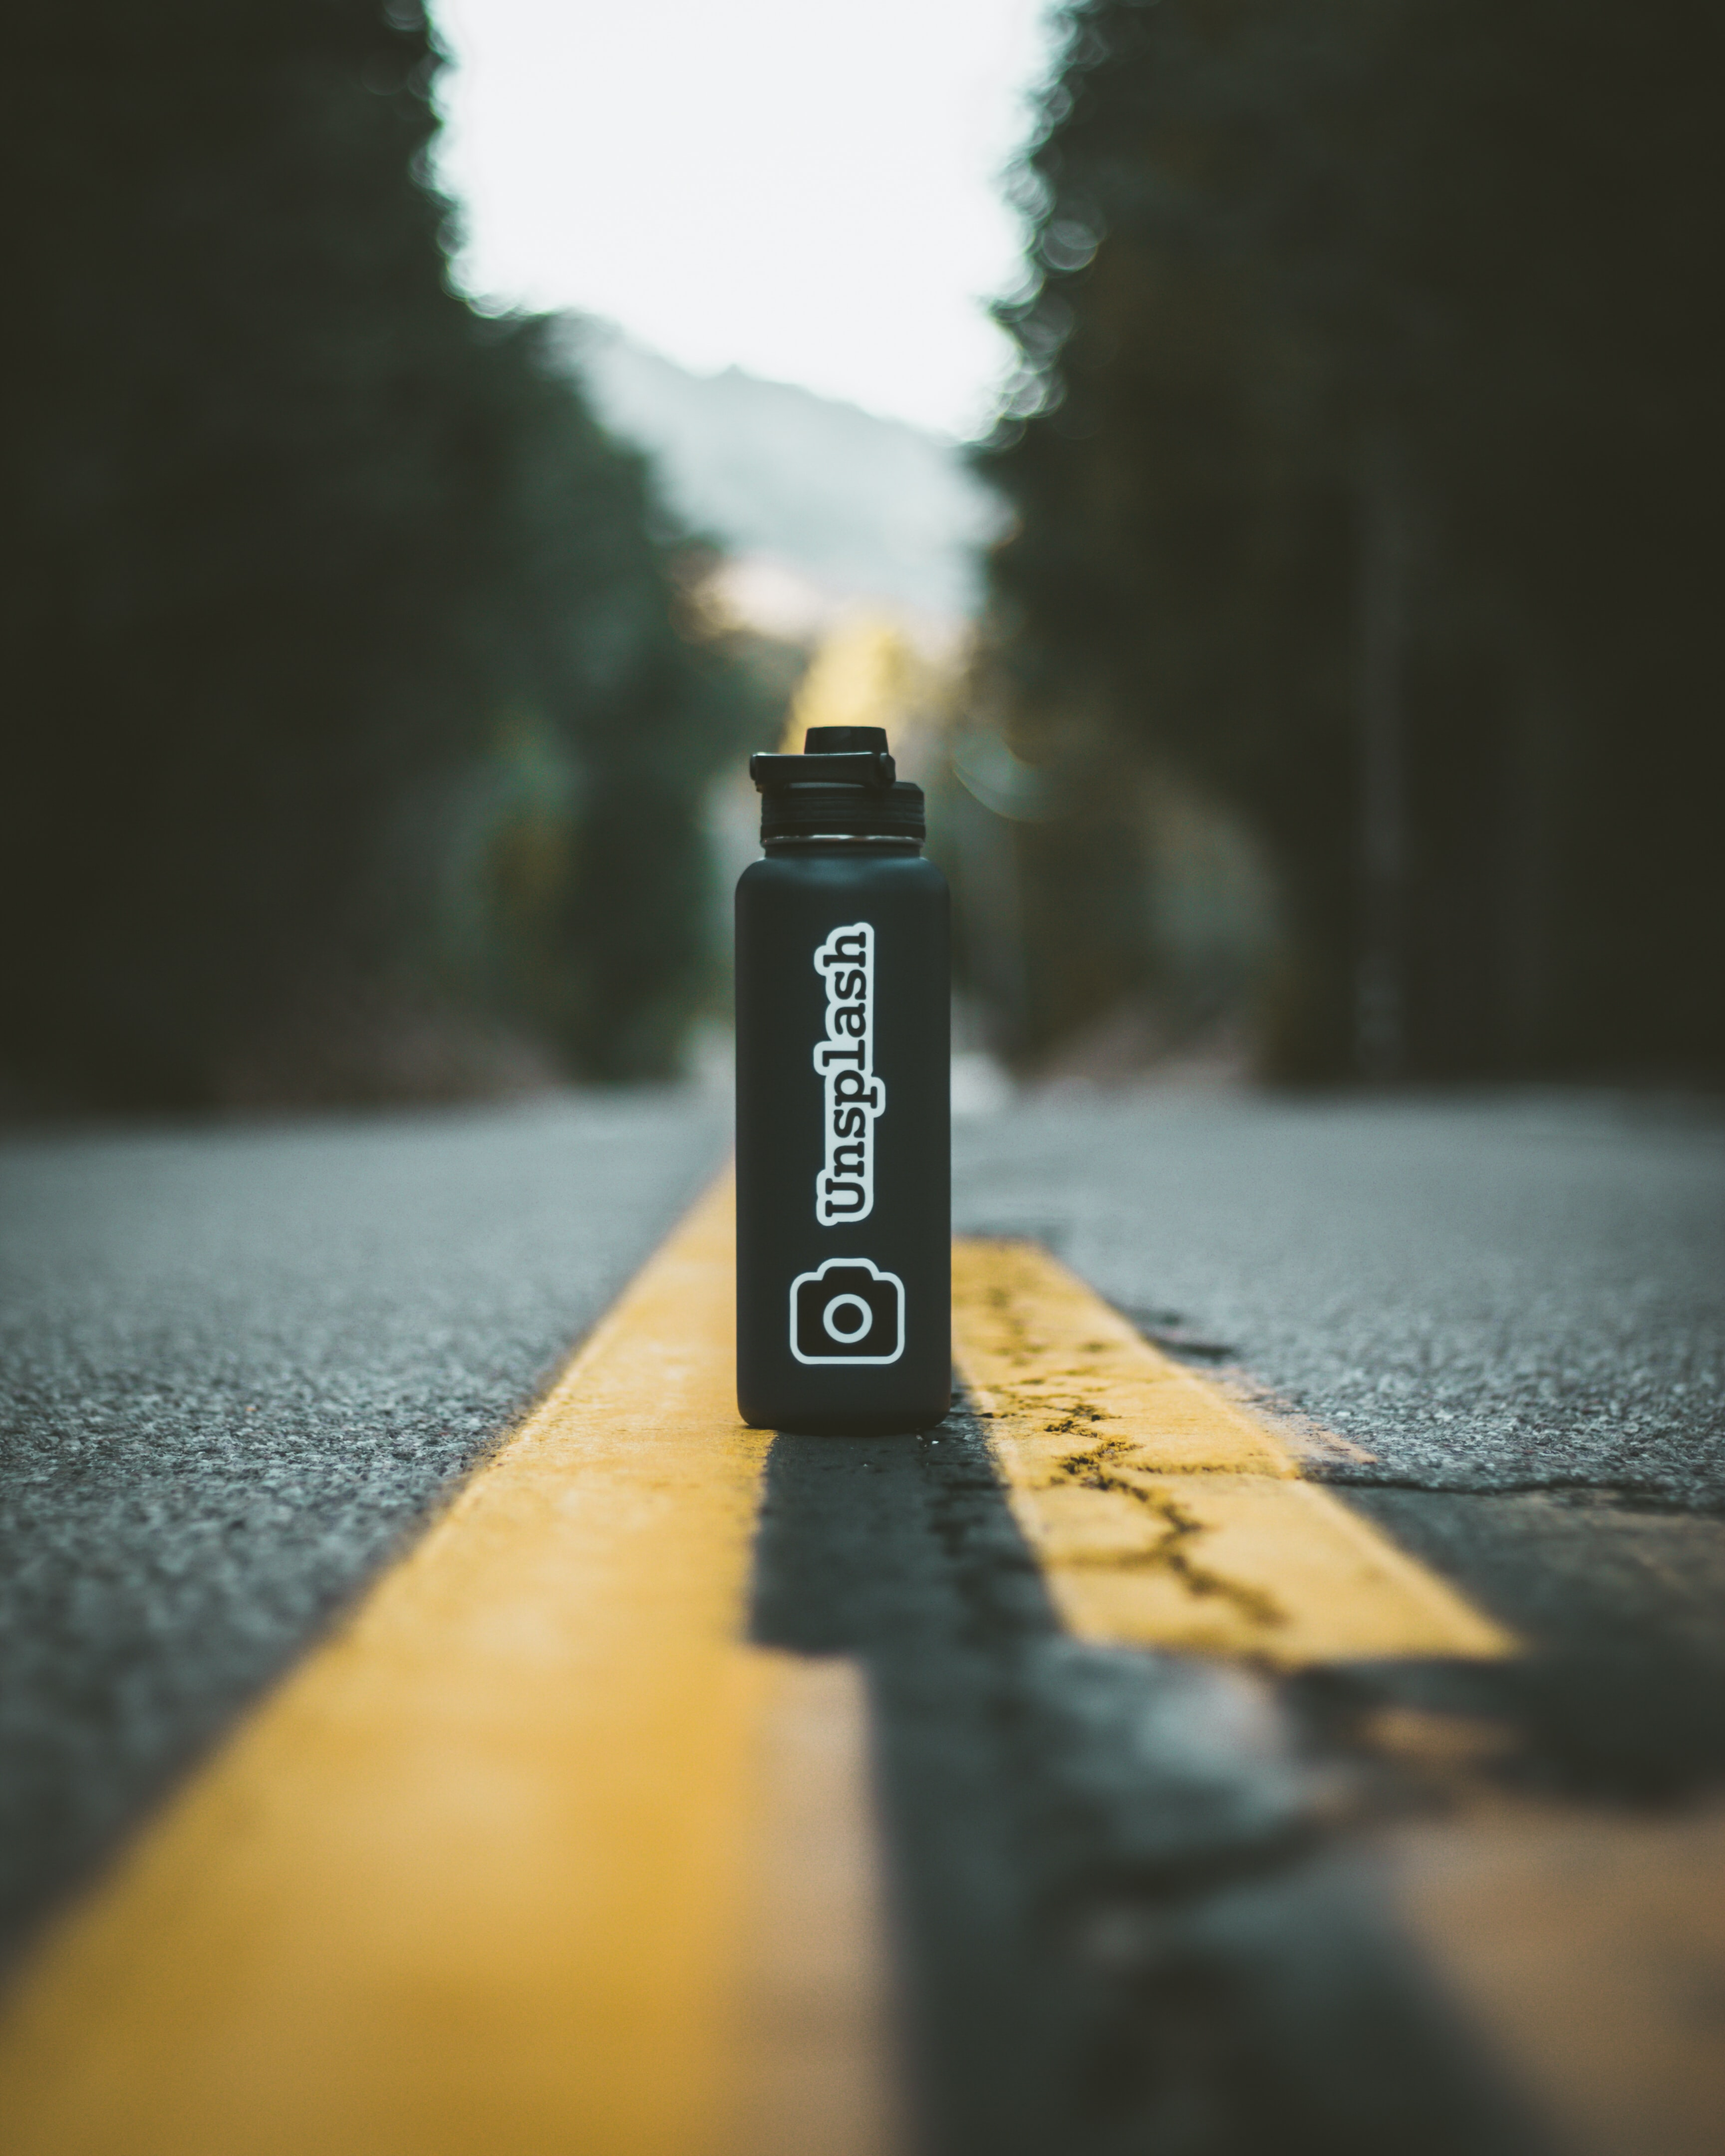 tilt-shift photography of Unsplash bottle